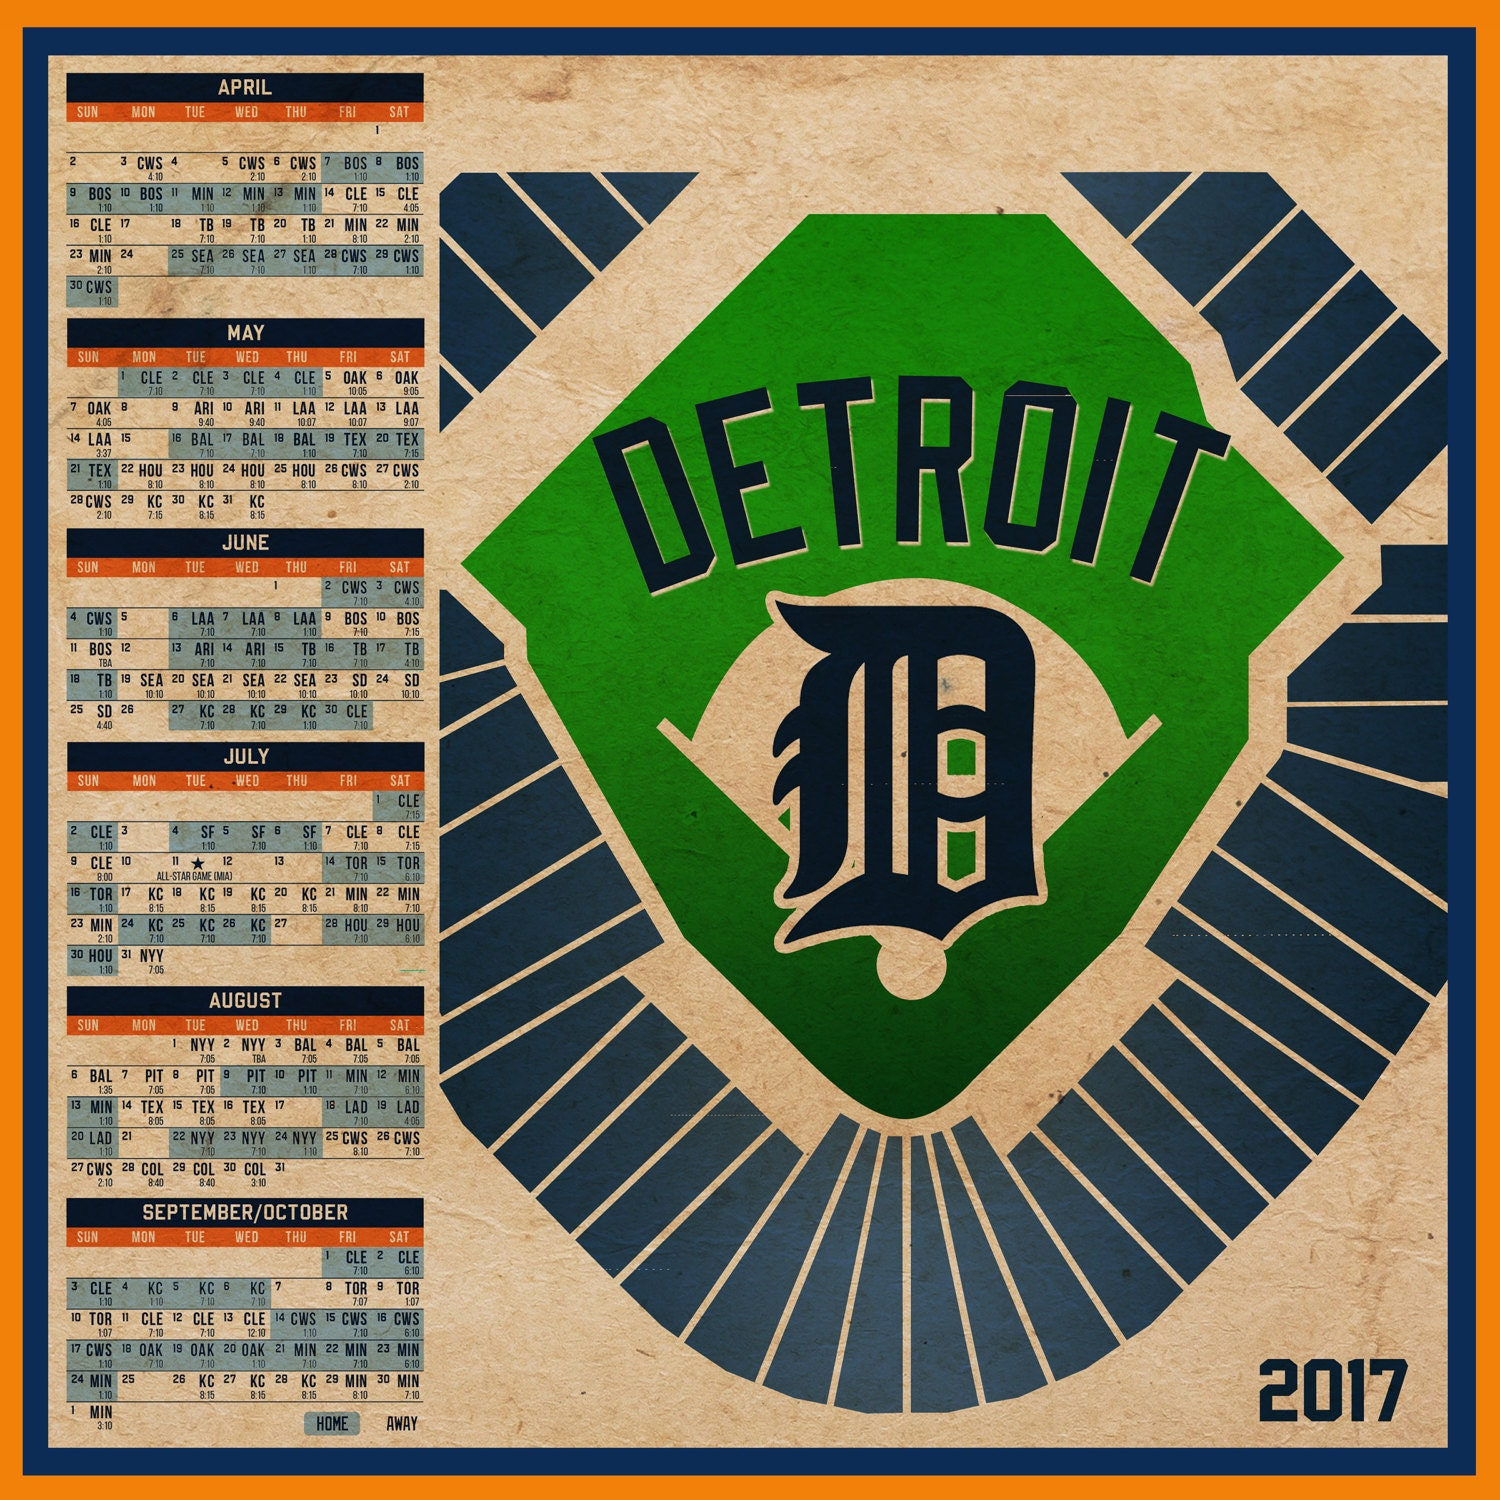 This is an image of Punchy Printable Detroit Tigers Schedule